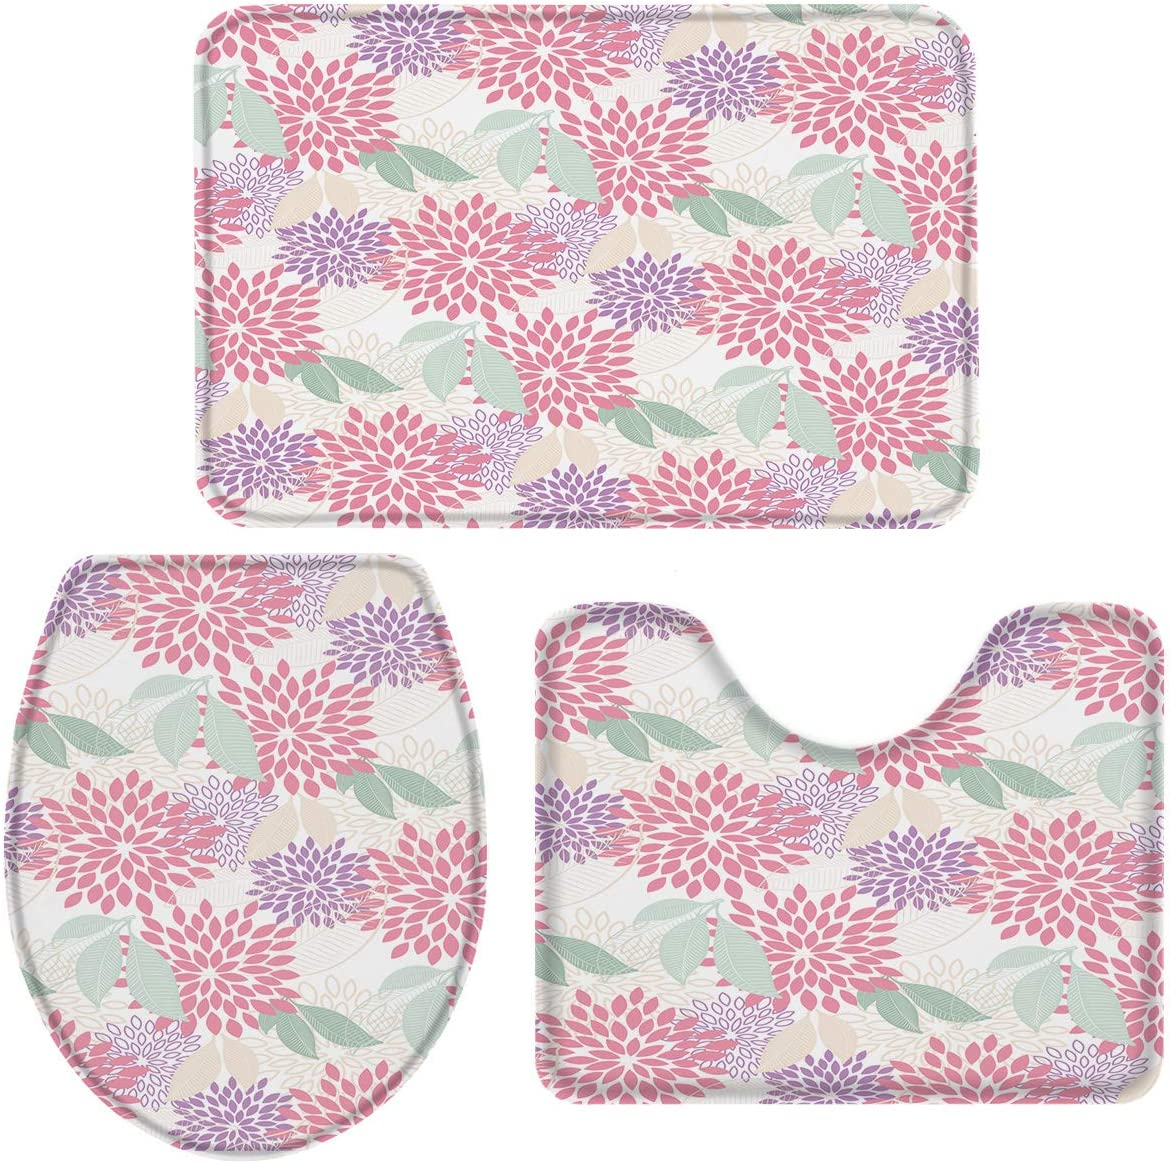 Hittoliy Rhombus Bath Mat Geometric Repeat Cell Doodle Flower Leaf Bathroom Mat Set 3 Pieces Rug Toilet Seat Lid Cover Non Slip Mat Anti-Skid Pad